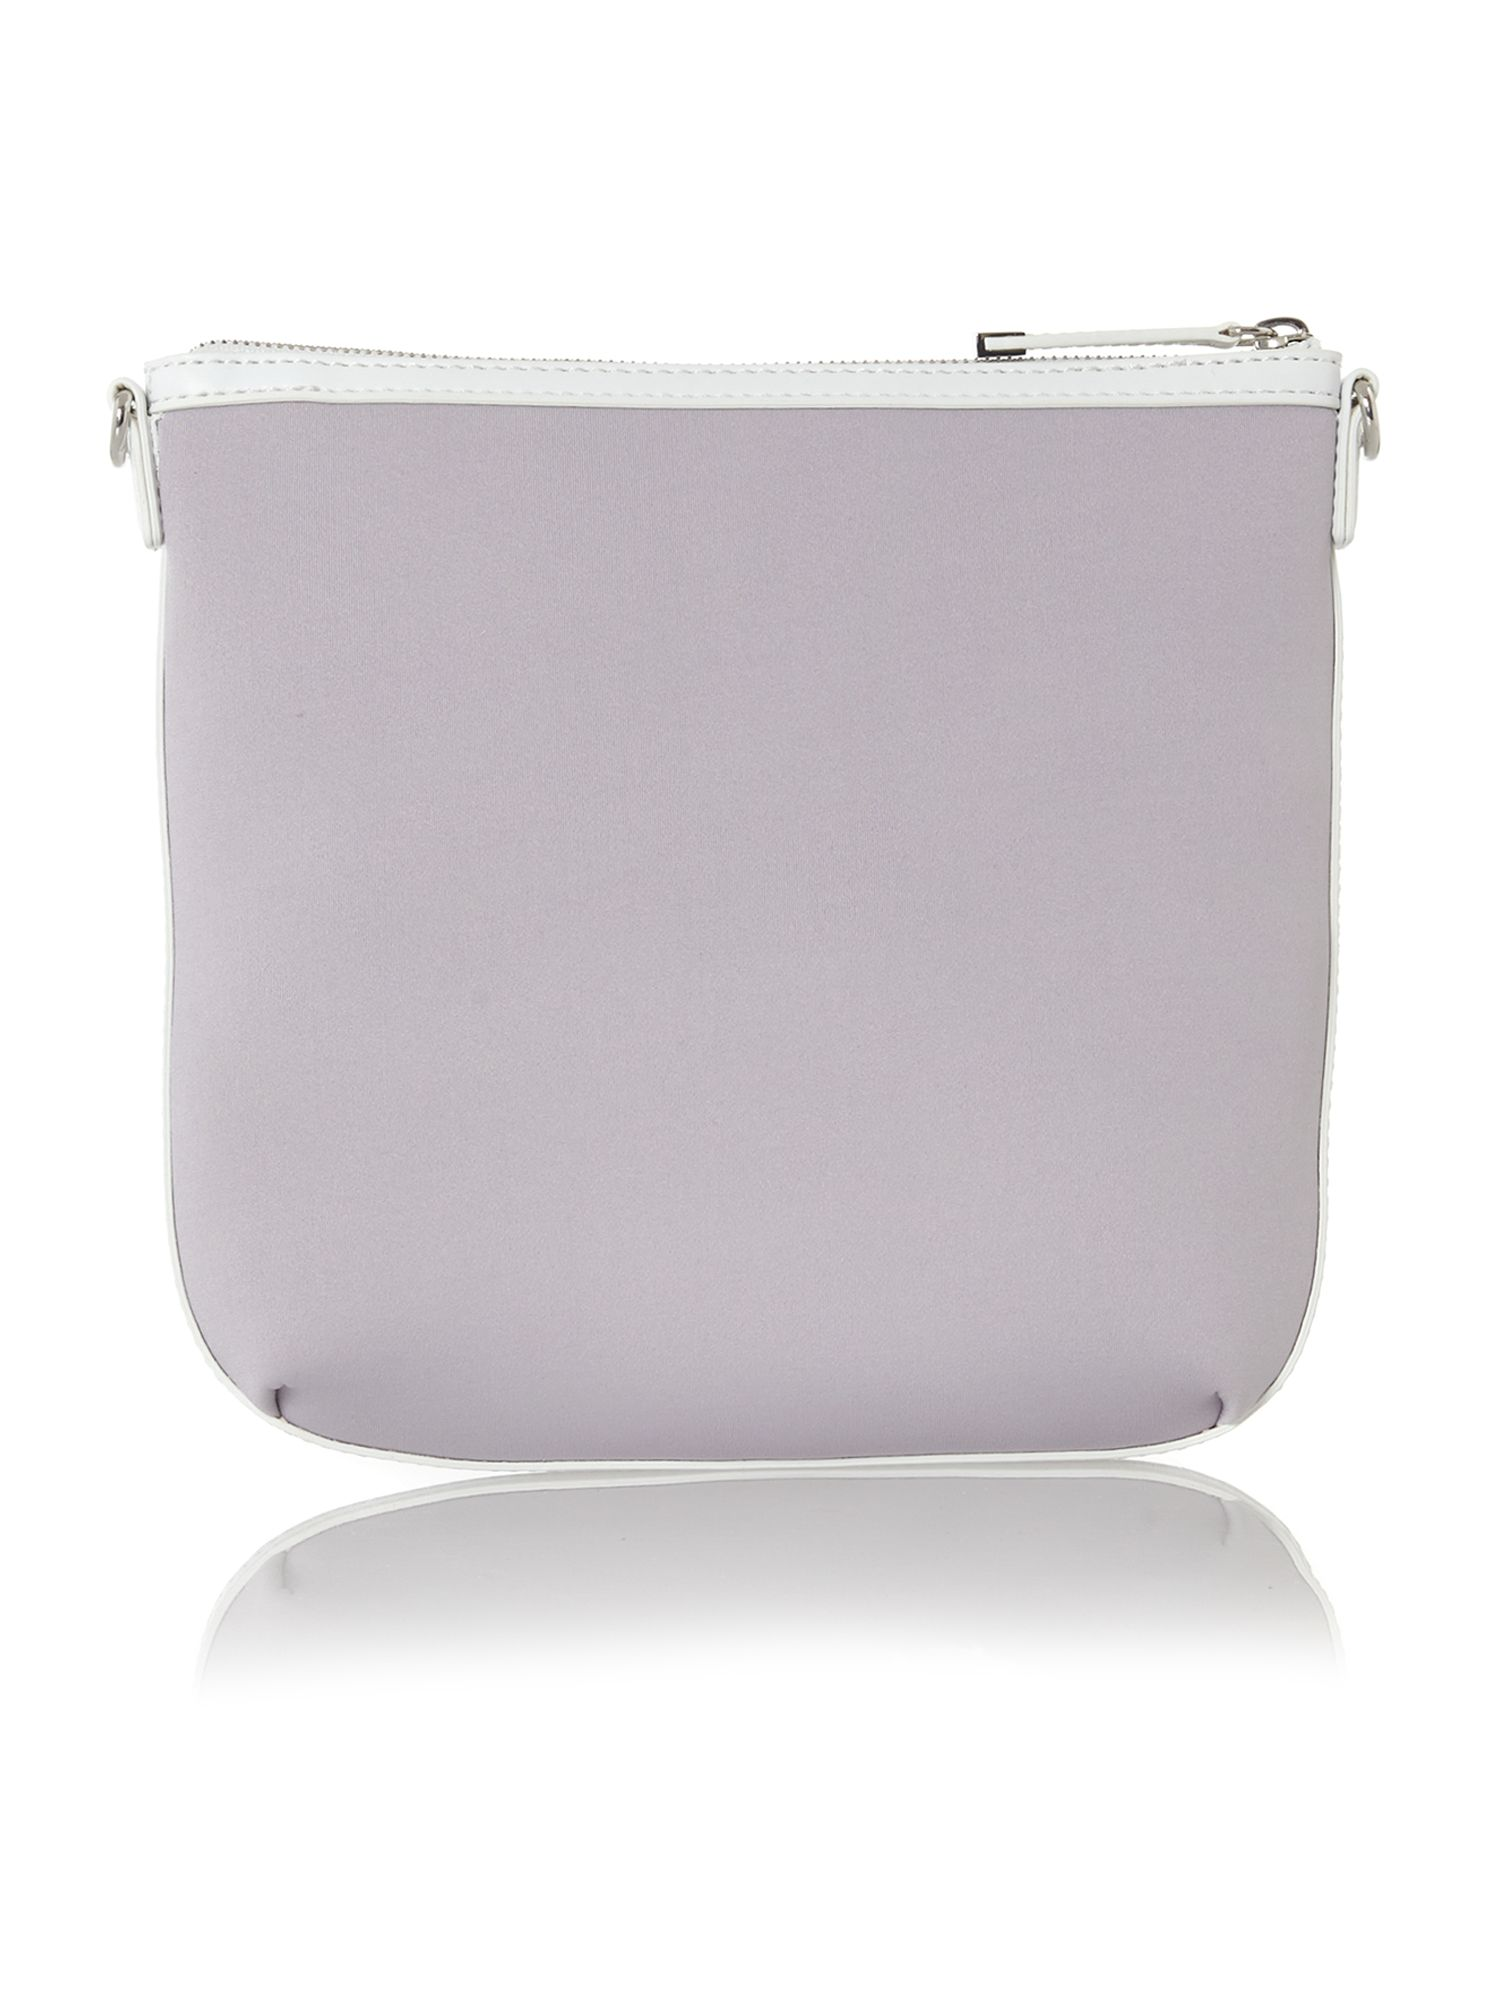 Neoprene multi-coloured crossbody bag